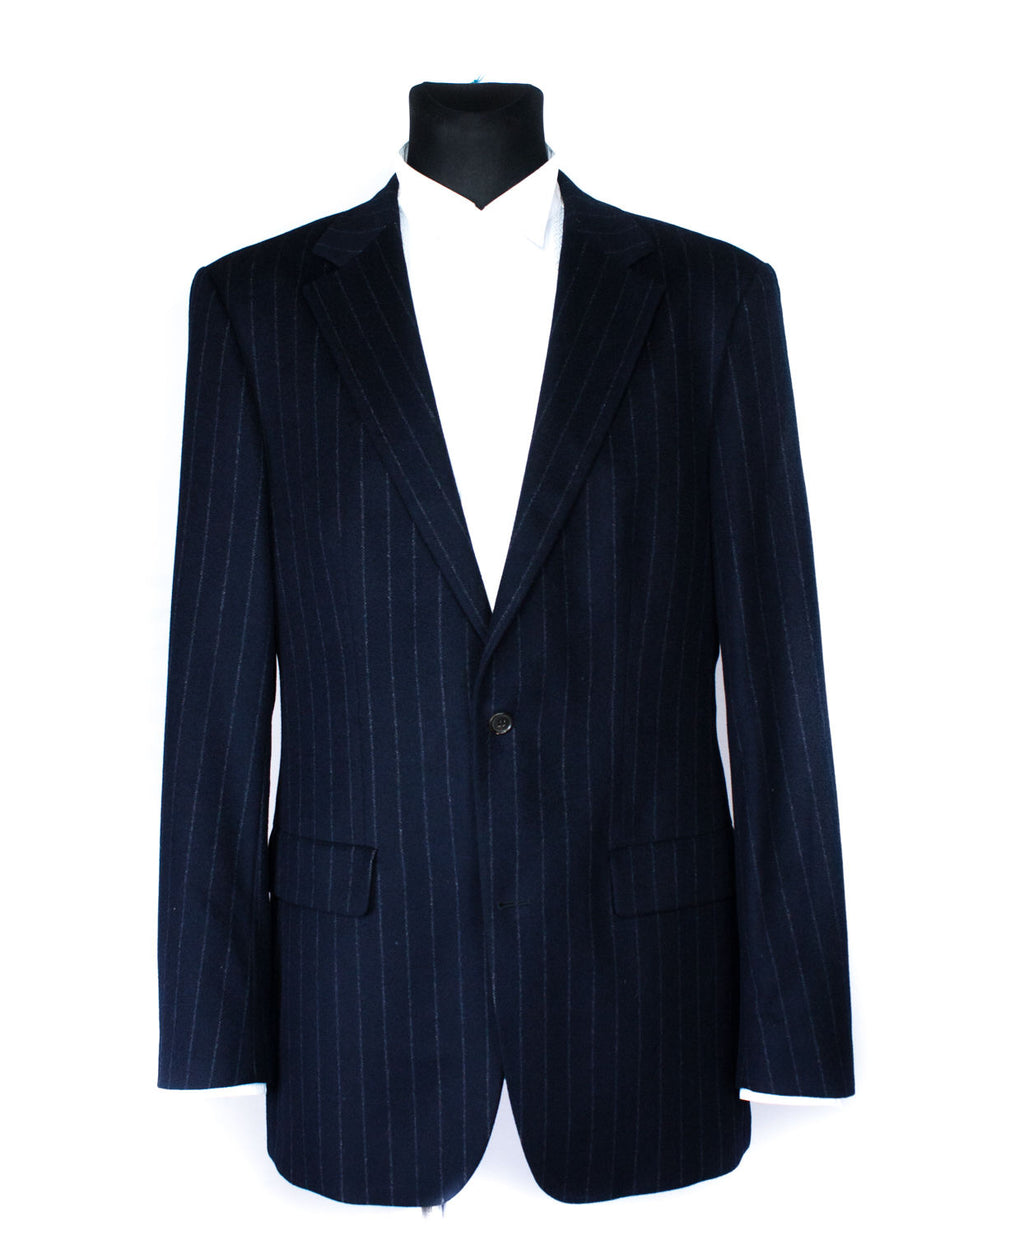 HUGO BOSS Cashmere-Wool Navy Blue Striped Blazer, US42L/EU102 - secondfirst